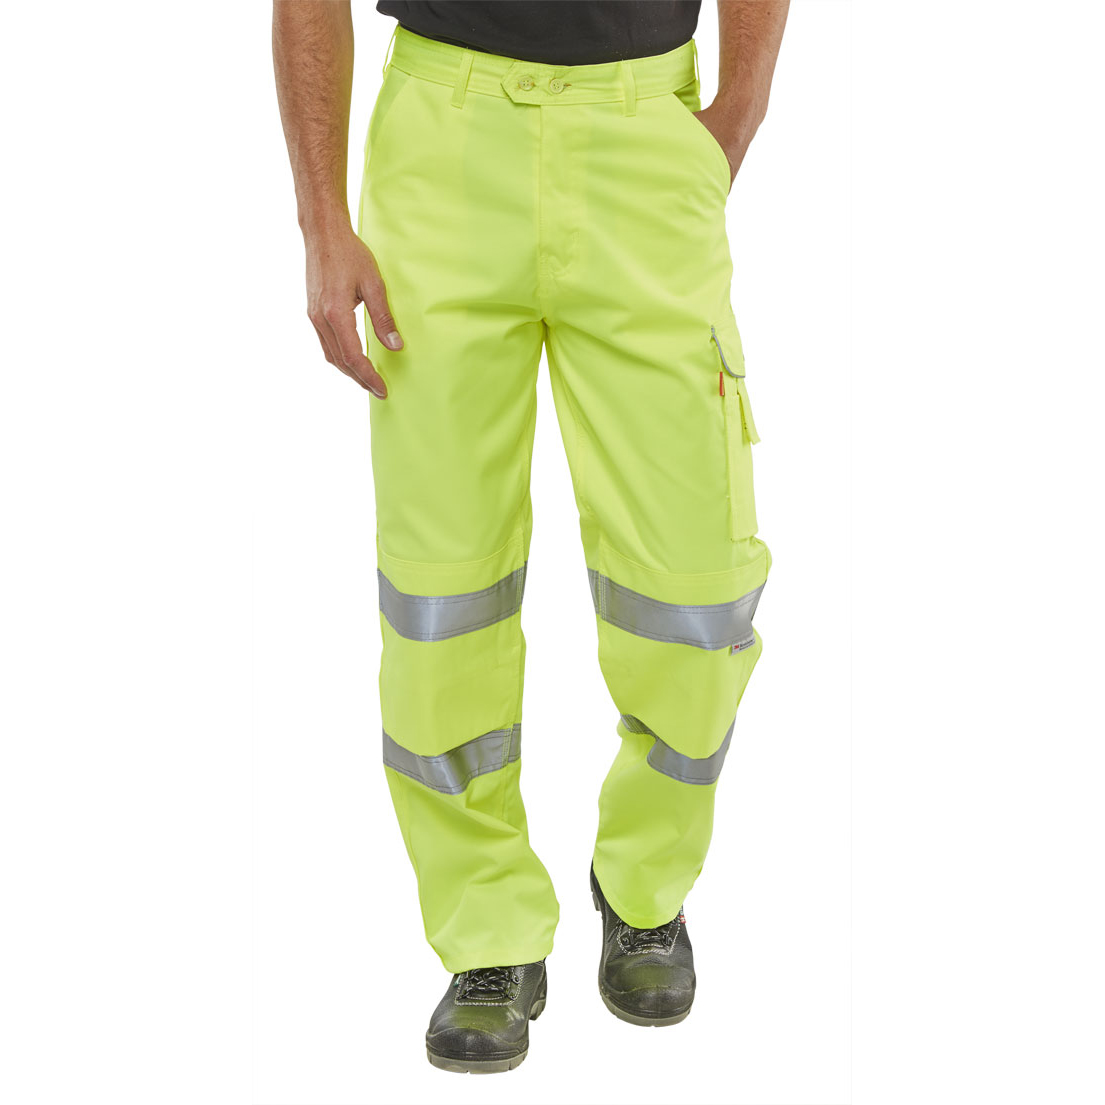 Mens slacks or trousers or shorts BSeen Polycotton Trousers EN ISO20471 Saturn Yellow 28 Long Ref PCTENSY28T *Up to 3 Day Leadtime*